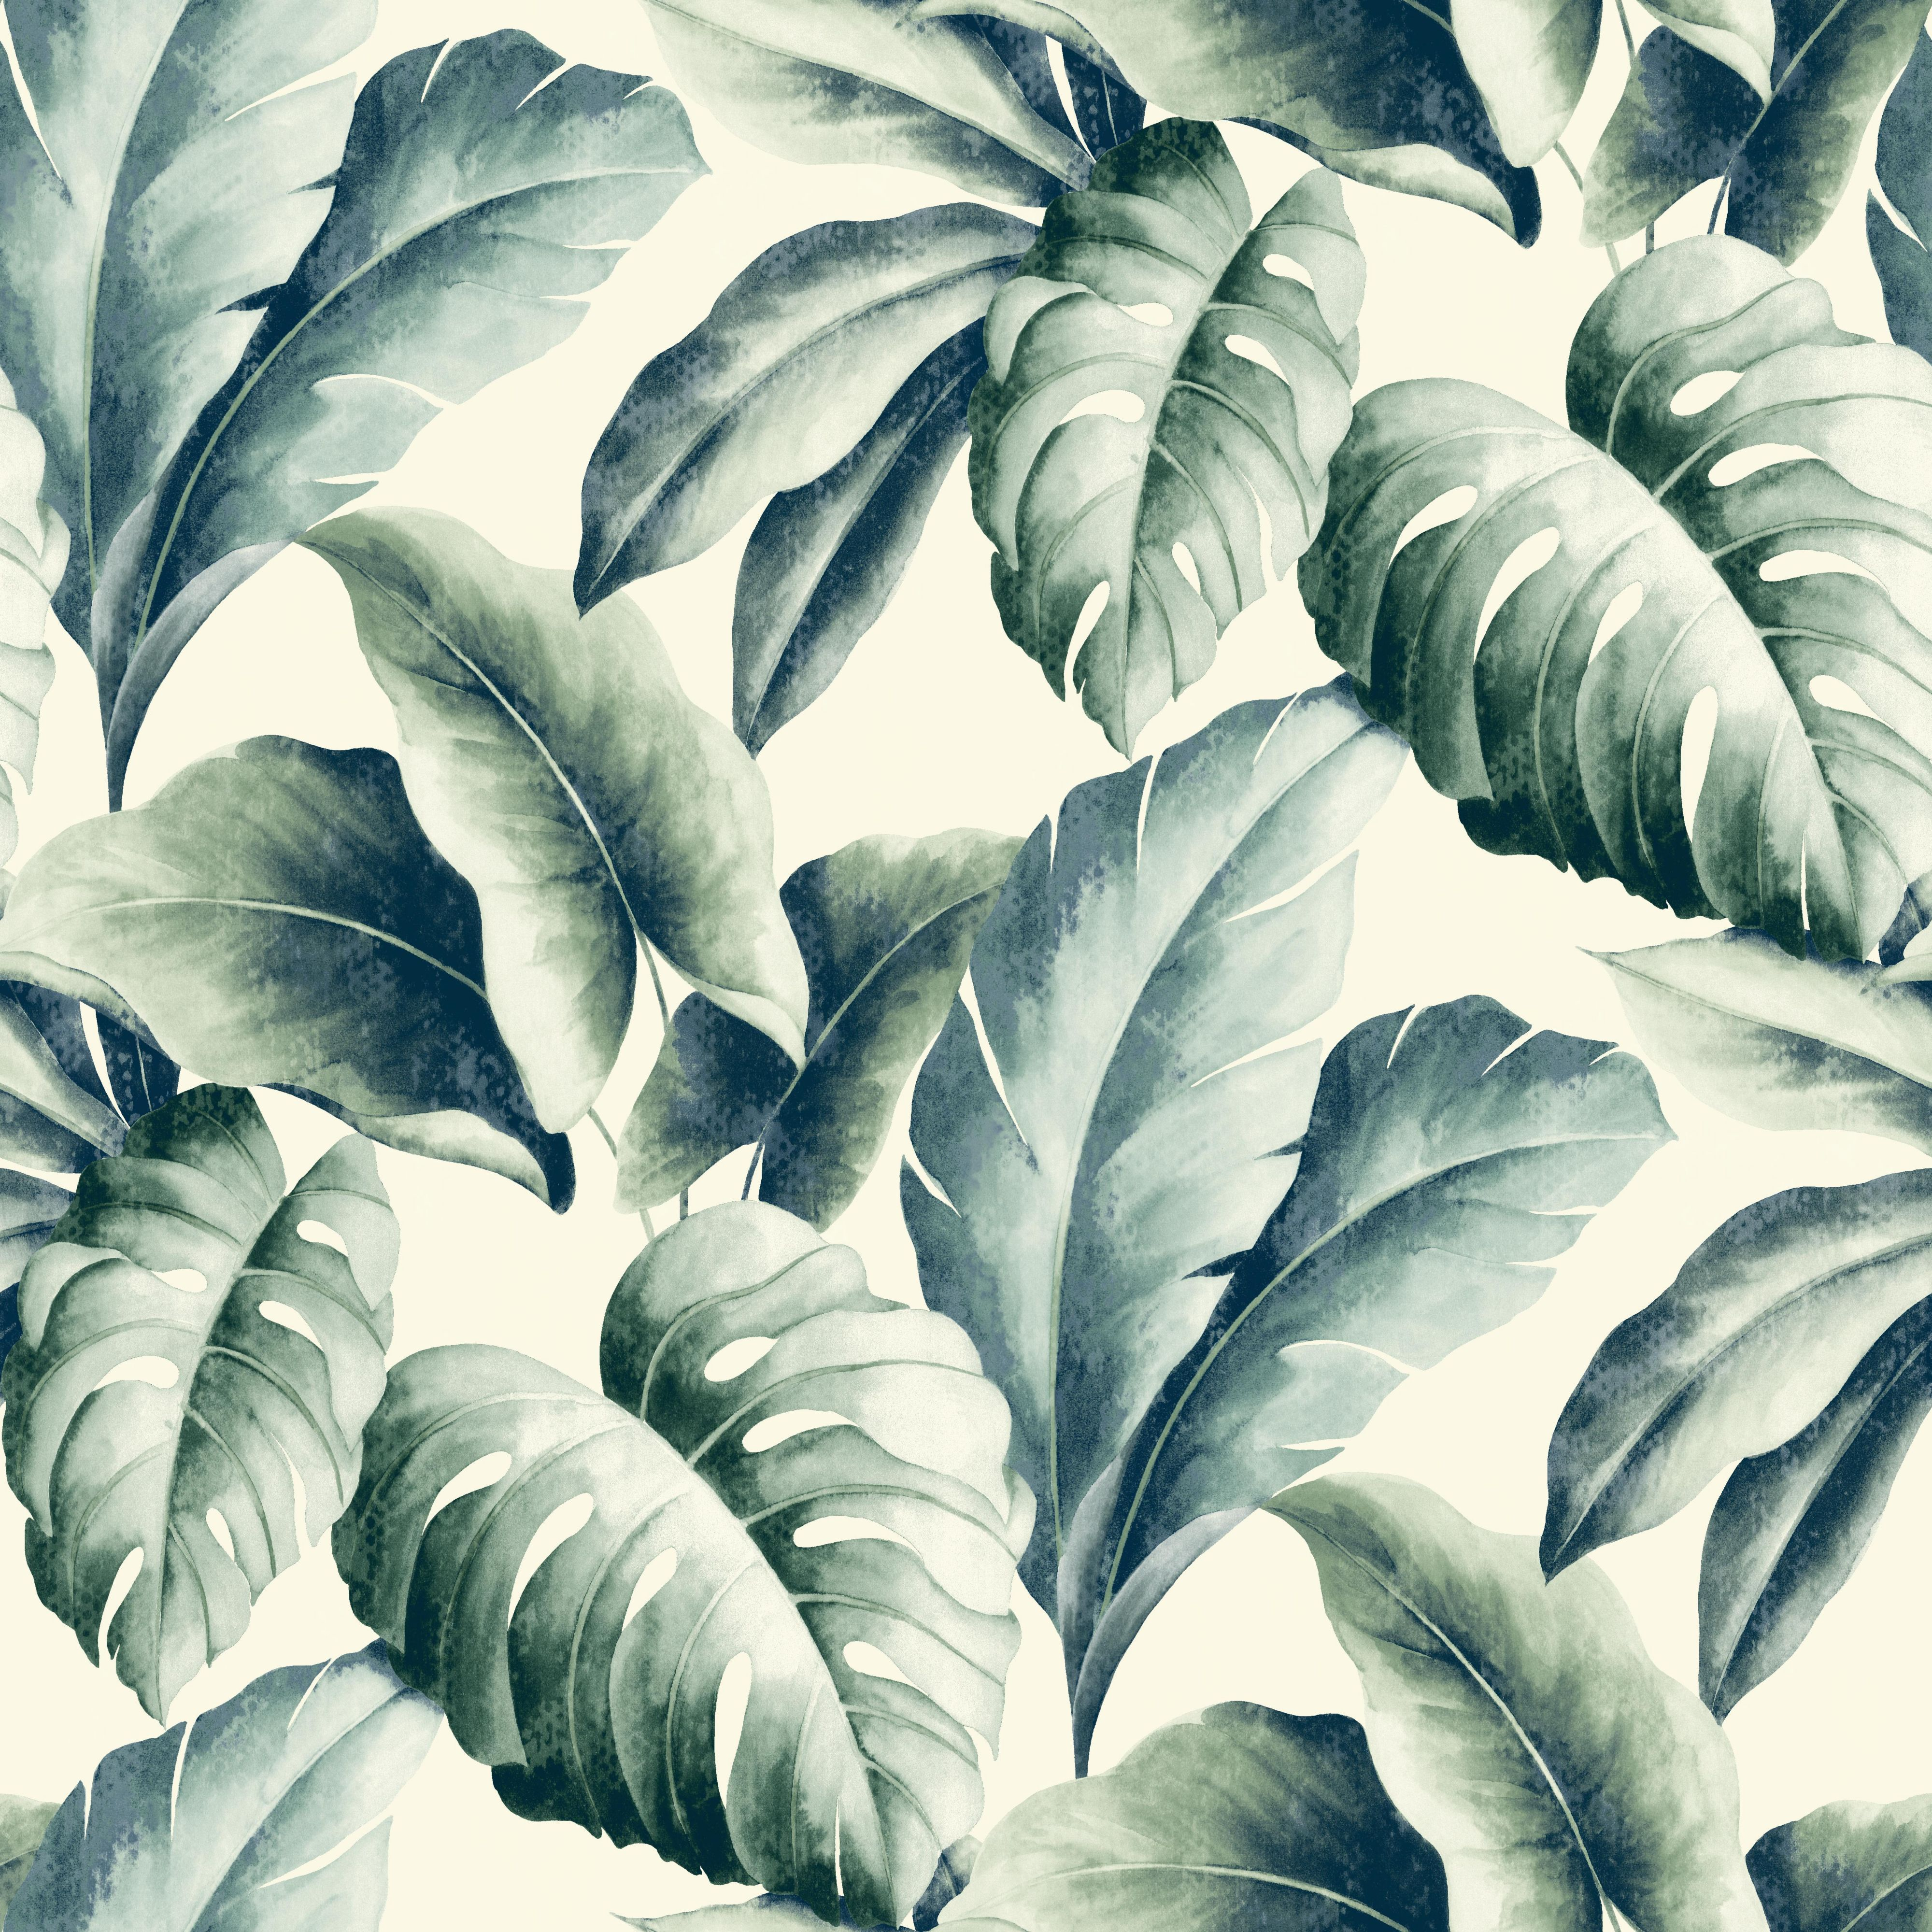 Gold Green Palm Leaf Wallpaper B Q For All Your Home And Garden Supplies And Advice On All The Latest Palm Leaf Wallpaper Leaf Wallpaper Green Leaf Wallpaper